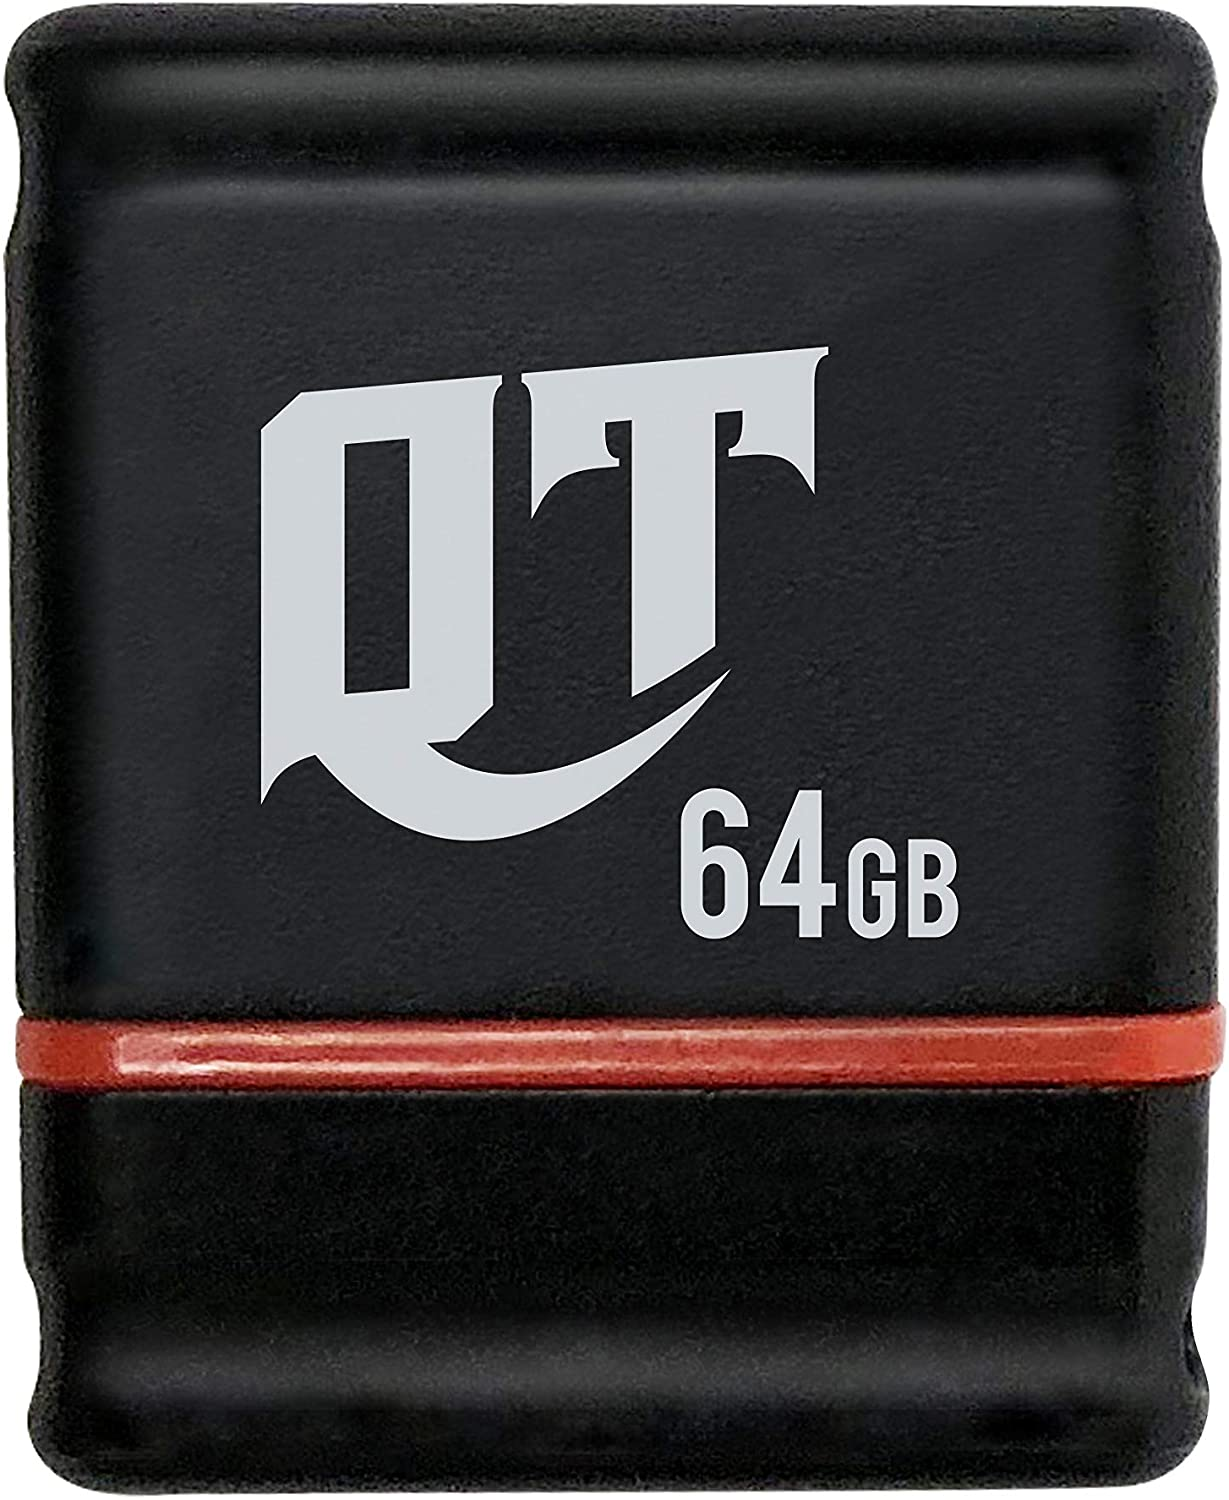 Patriot QT 64GB Mini USB 3.1 Gen. 1 Flash Drive Model PSF64GQTB3USB